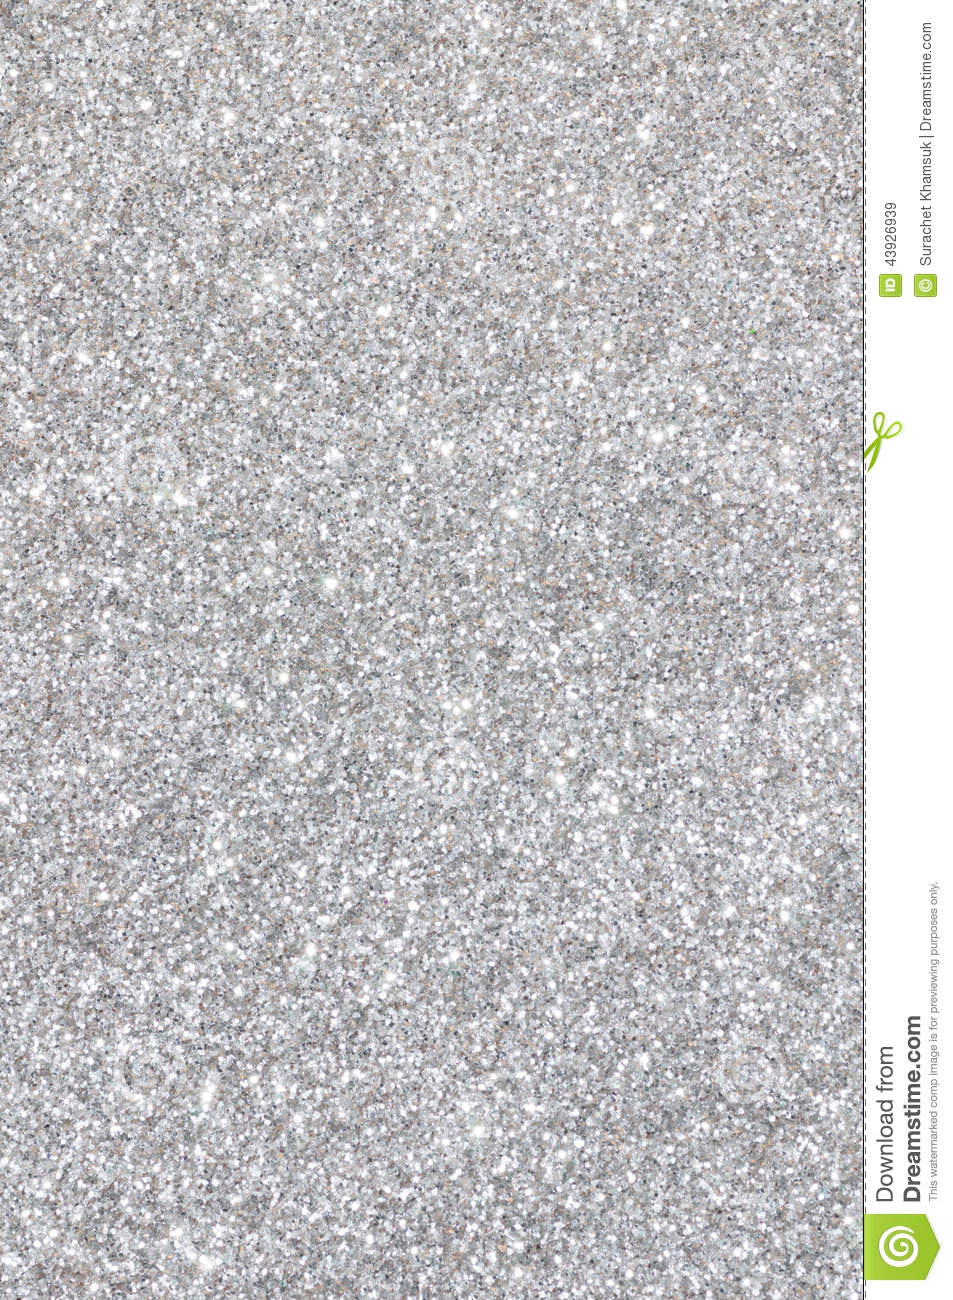 silver glitter texture background stock photo image